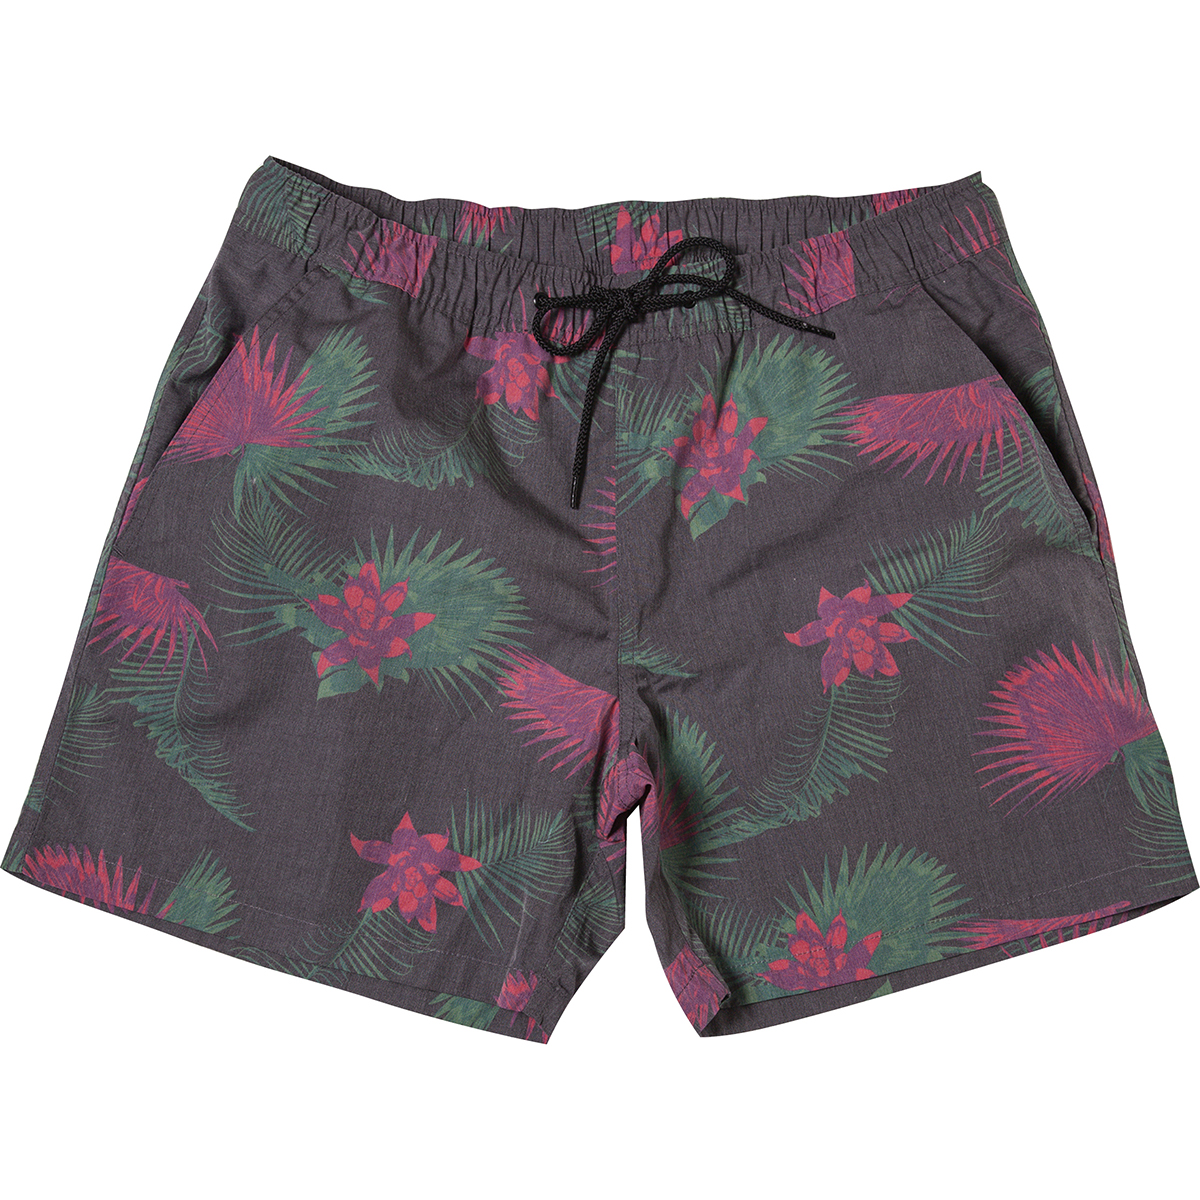 FEELGOOD SHORT フィールグッドショーツ Number : s20-so-16 Fabric :Polyester 65% Cotton 35% Size : XS, S, M, L, XL Color:Black × Print Price : ¥11,800